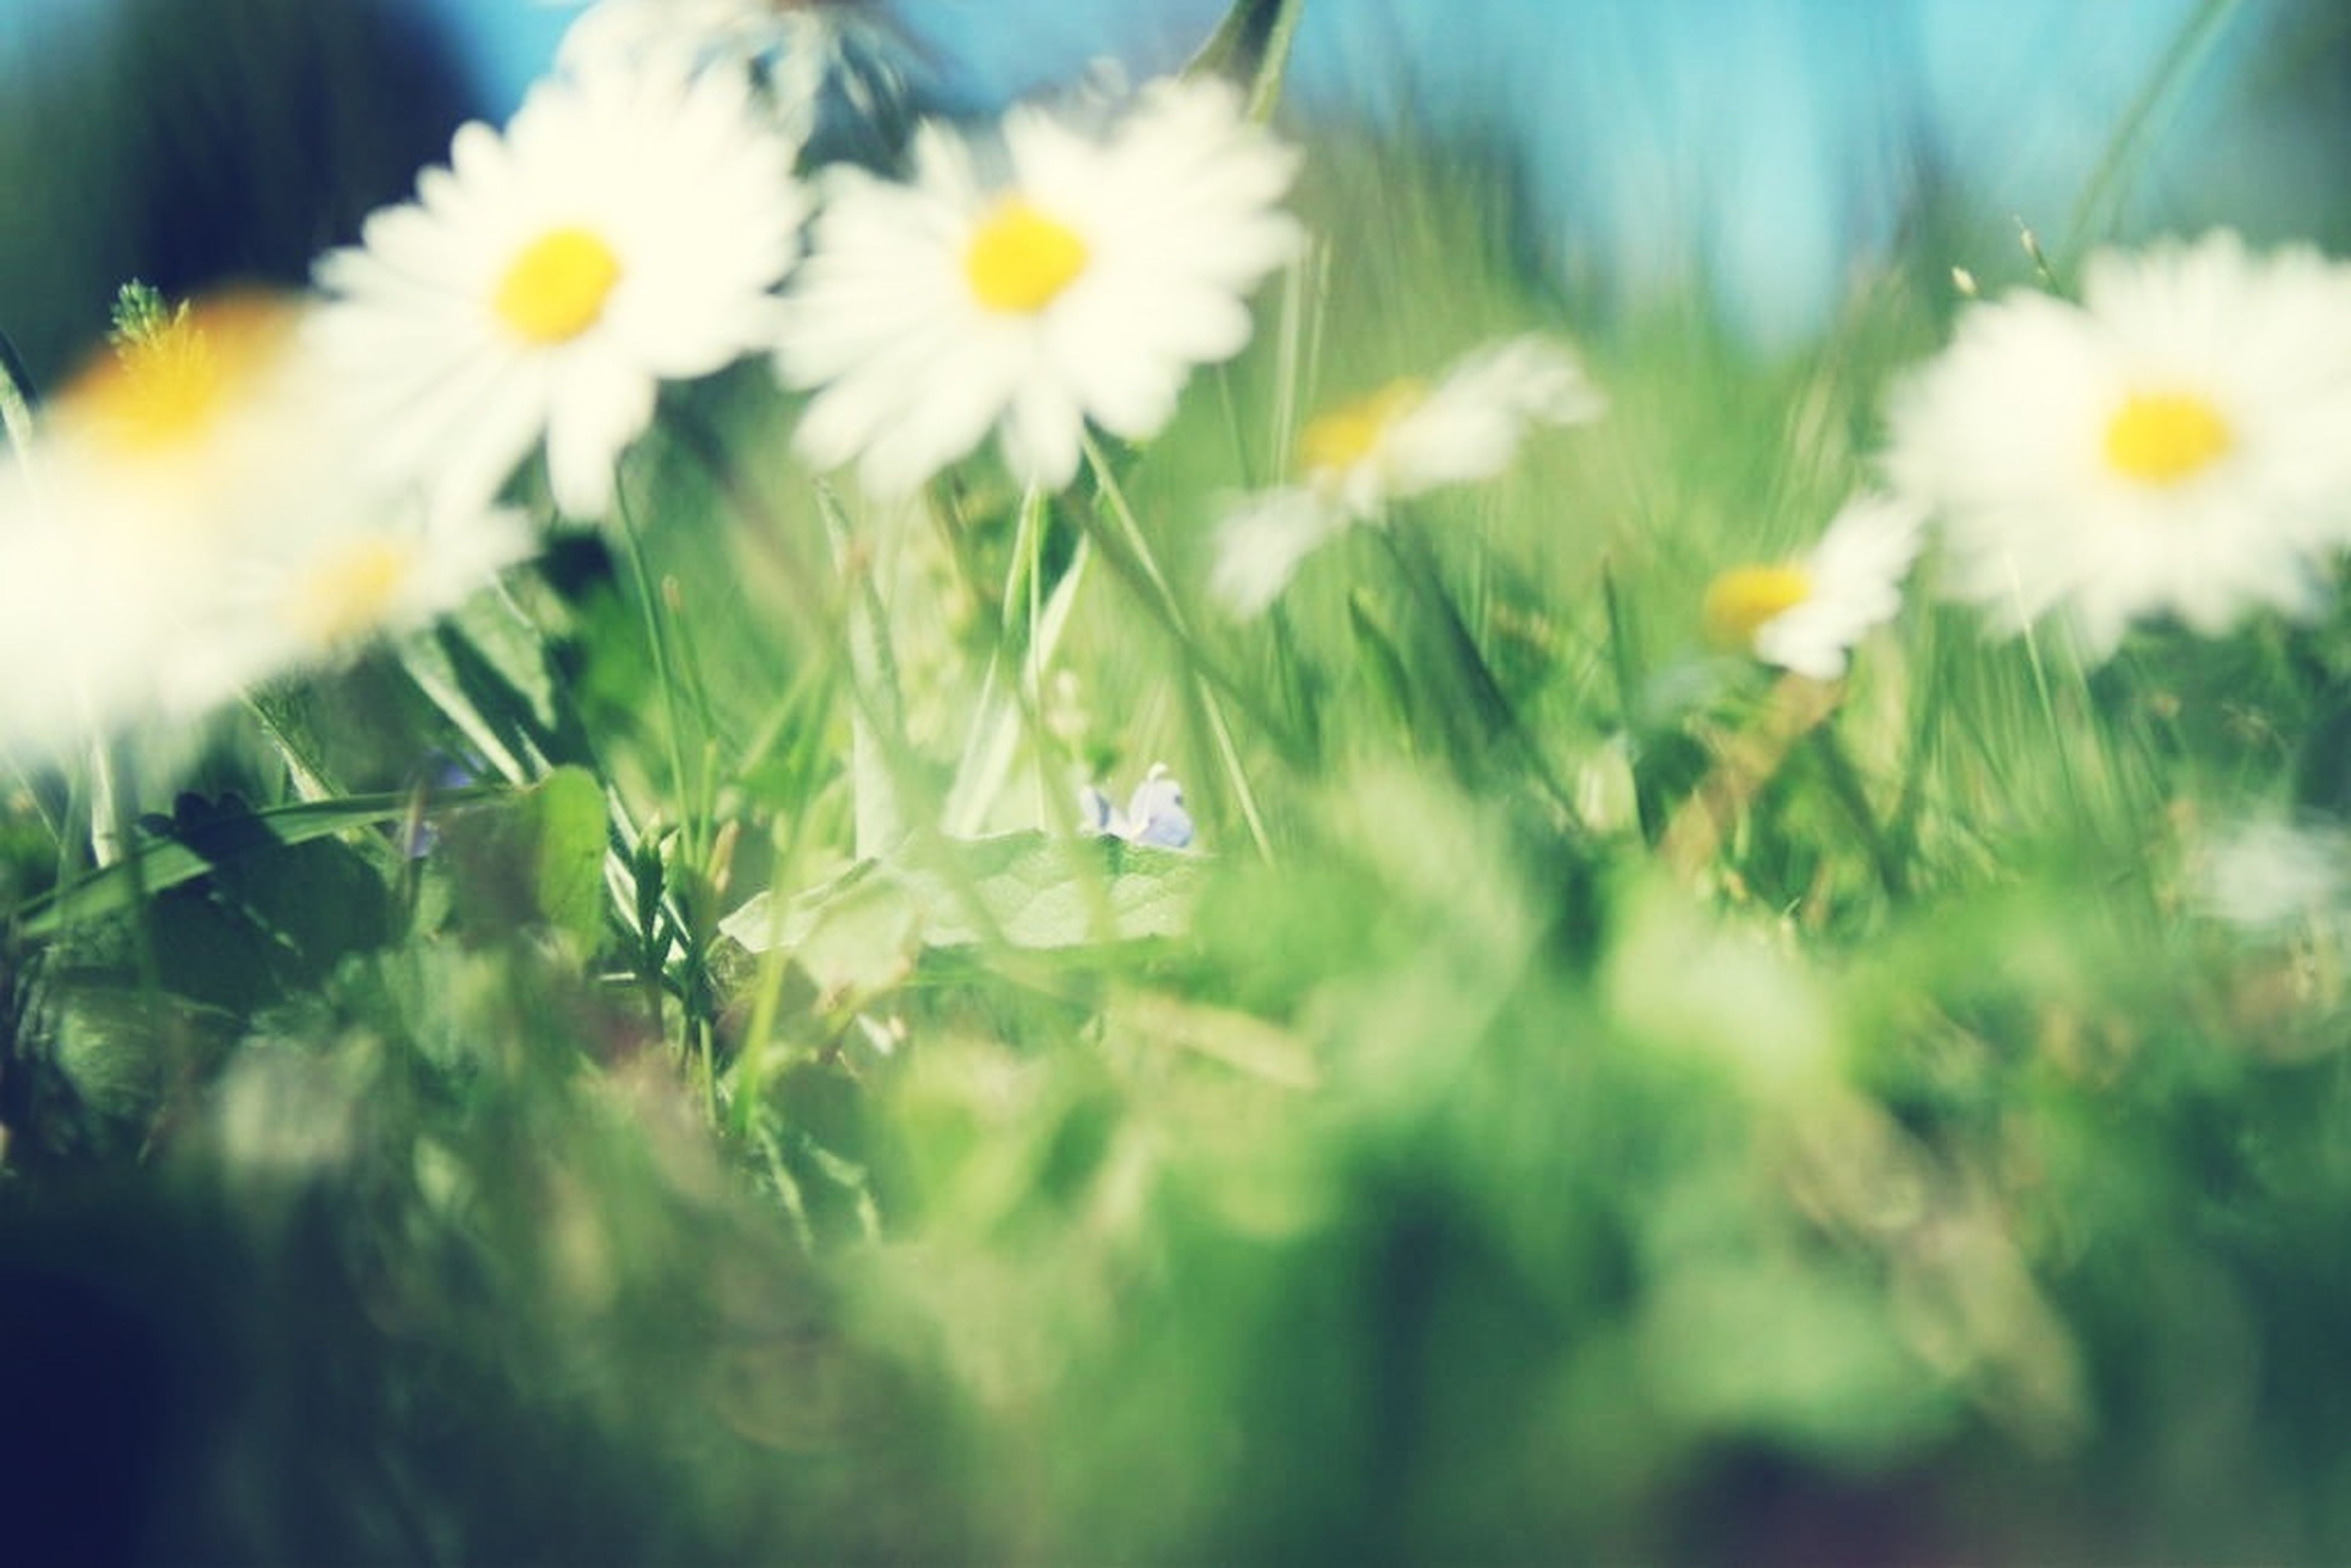 flower, growth, freshness, fragility, plant, beauty in nature, nature, focus on foreground, close-up, petal, white color, blooming, selective focus, stem, flower head, field, wildflower, in bloom, day, outdoors